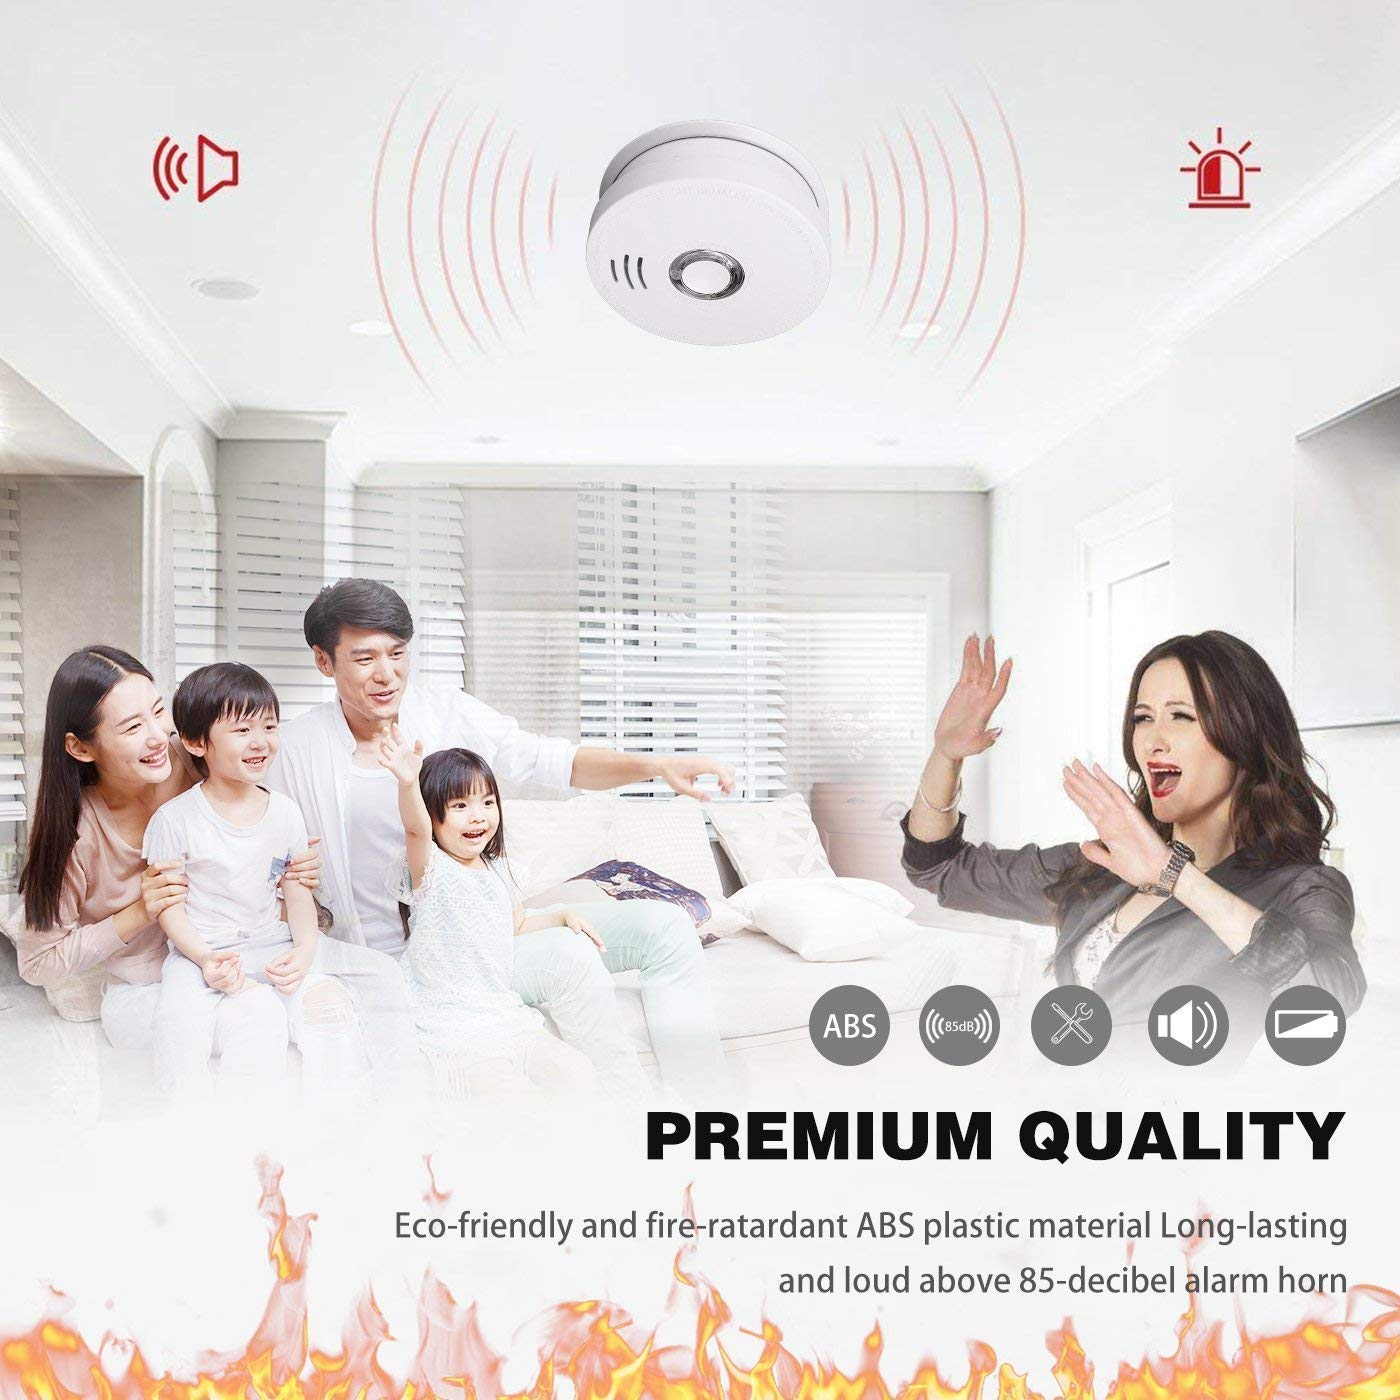 Smoke Detector and Fire Alarm 4 Pack Photoelectric Sensor Smoke Alarms Easy to Install Fire Alarm With UL Listed, Light Sound Warning, Test Button,9V Battery Included Fire Safety for Home Hotel School by SITERWELL (Image #5)